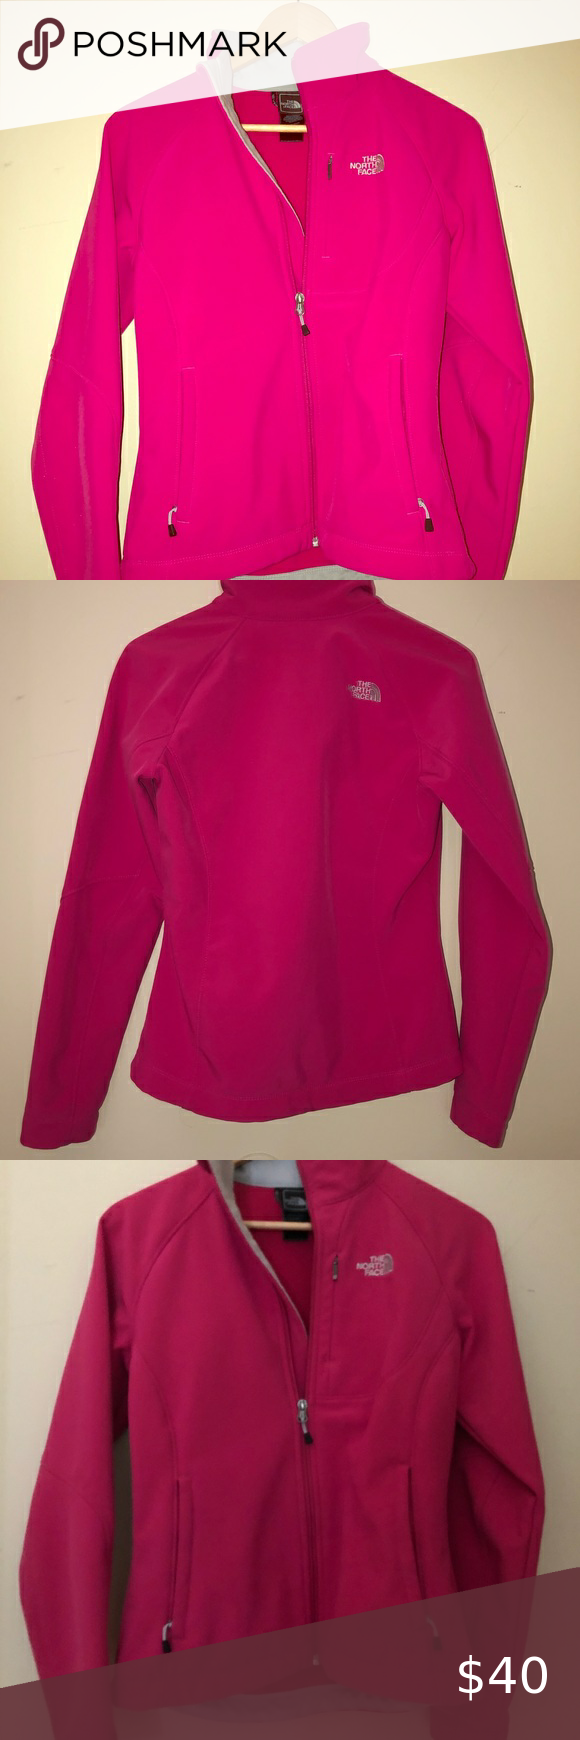 The North Face Apex Bionic Jacket The North Face Jackets North Face Jacket [ 1740 x 580 Pixel ]